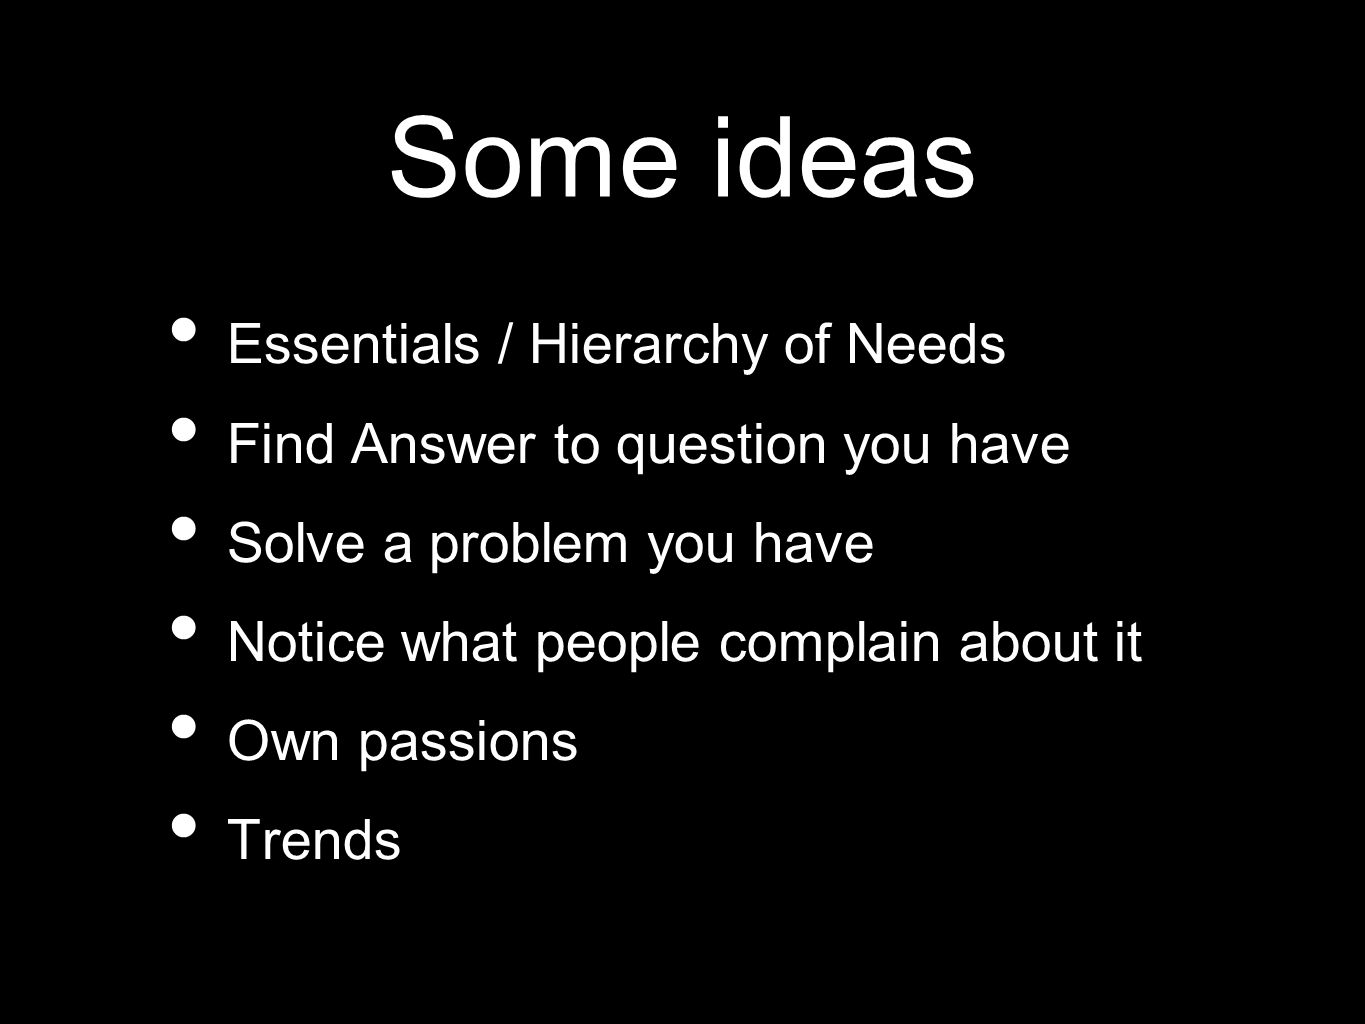 Some ideas Essentials / Hierarchy of Needs Find Answer to question you have Solve a problem you have Notice what people complain about it Own passions Trends